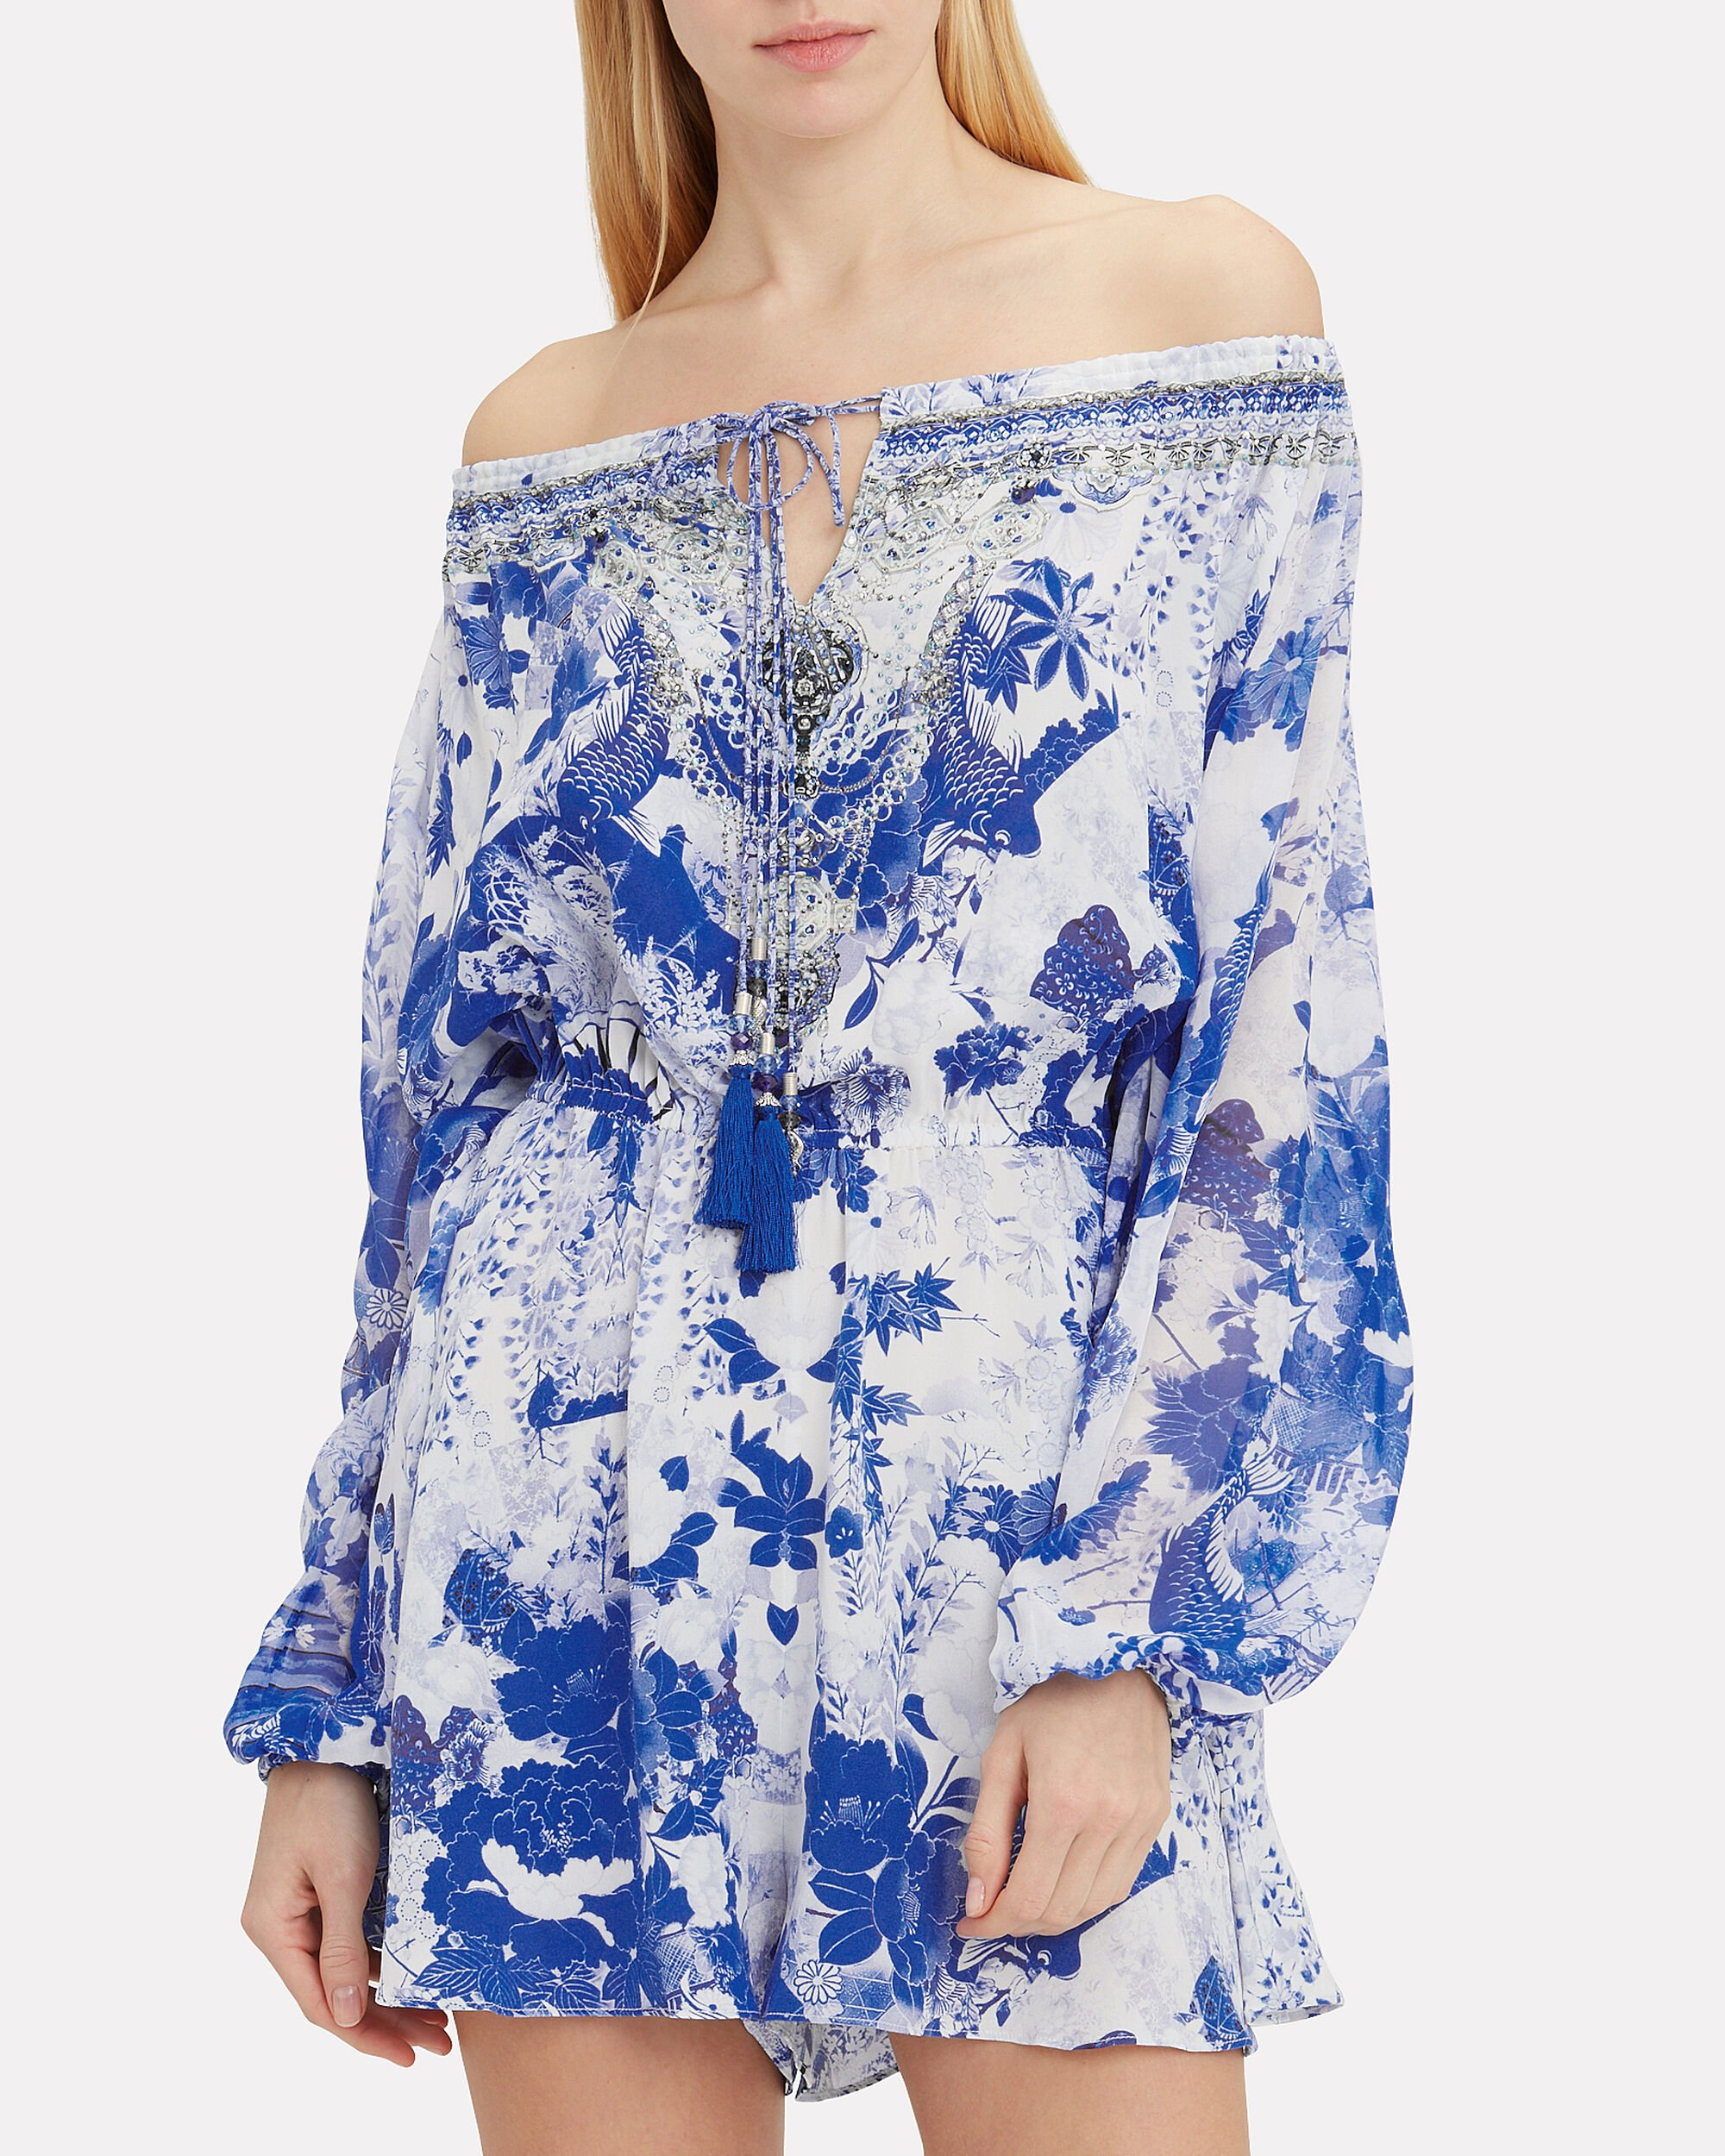 Blouson Sleeve Floral-Printed Playsuit, WHITE/BLUE, hi-res